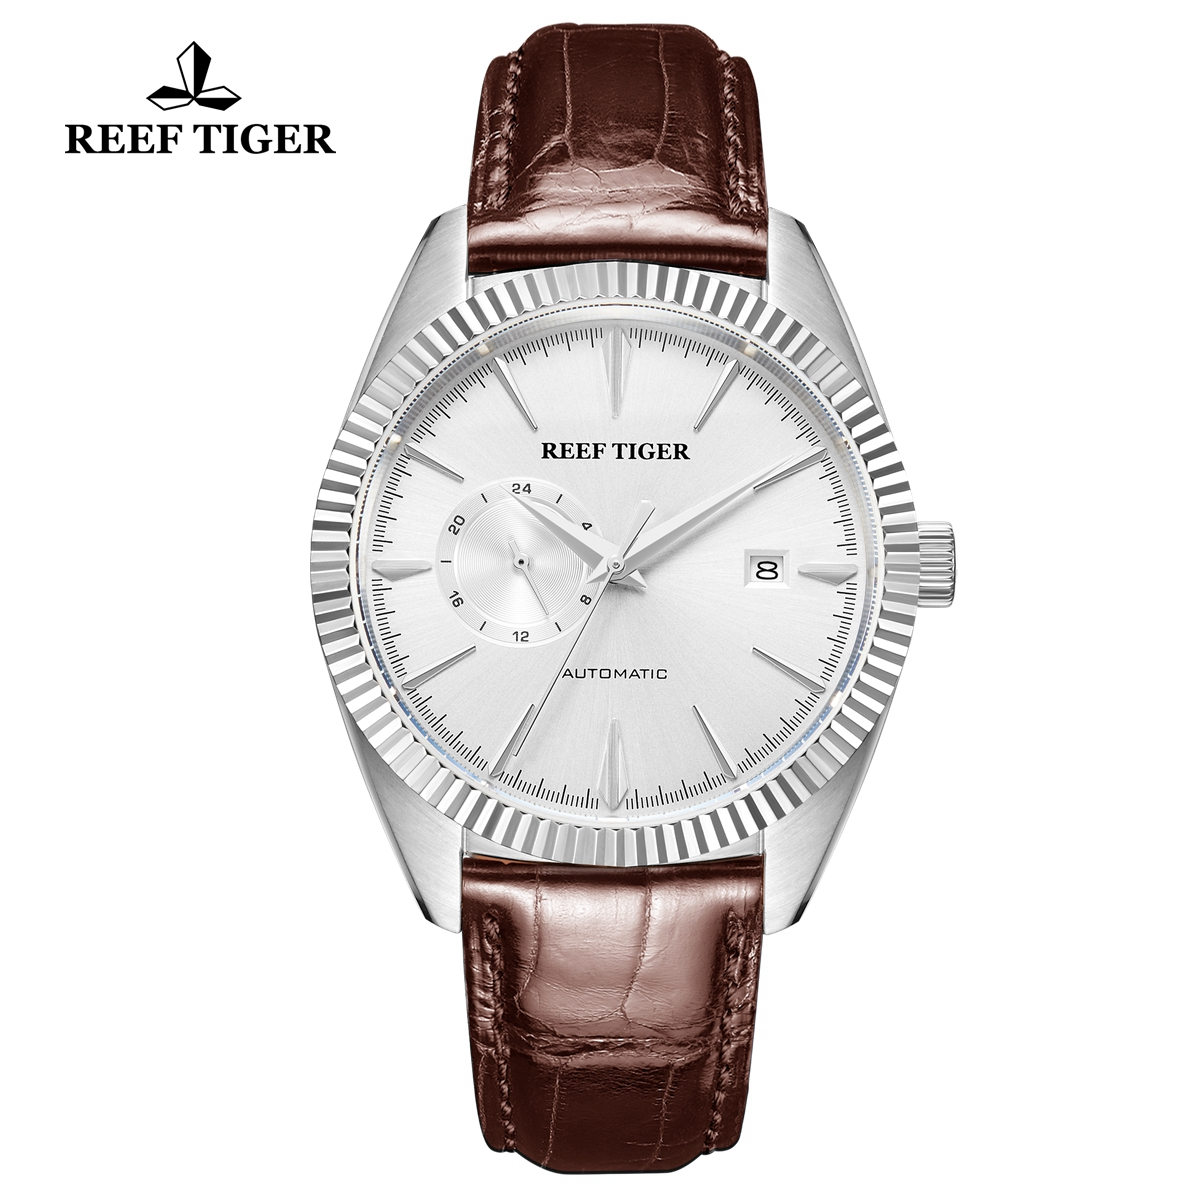 Reef Tiger Seattle Orion Fashion Steel Leather Strap White Dial Automatic Watch RGA1616-YWS